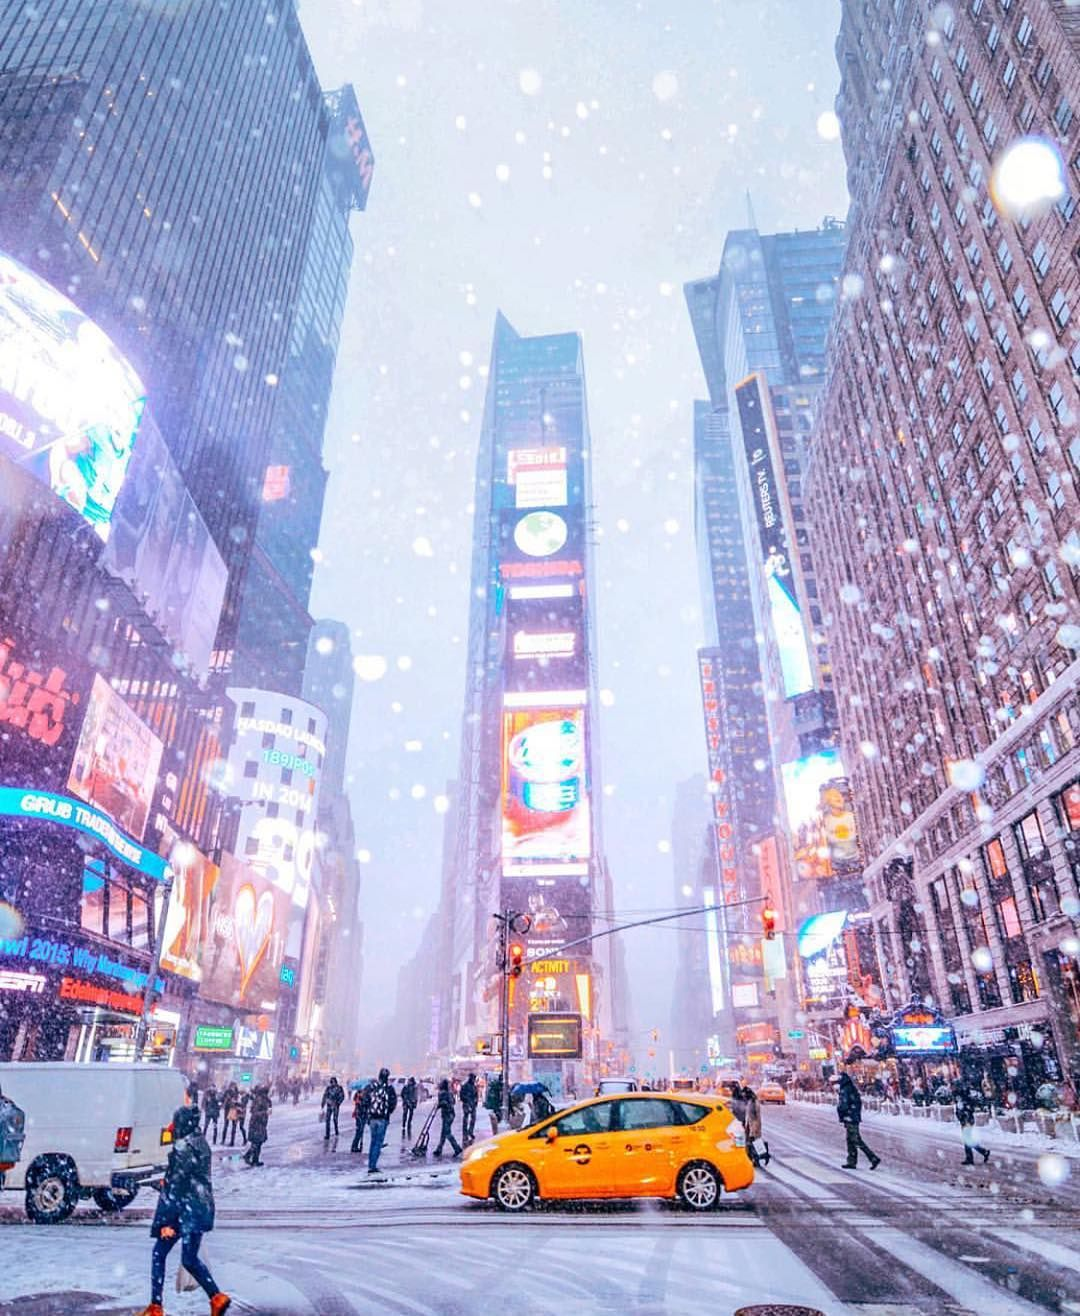 winter in times square nyc picture by. Black Bedroom Furniture Sets. Home Design Ideas